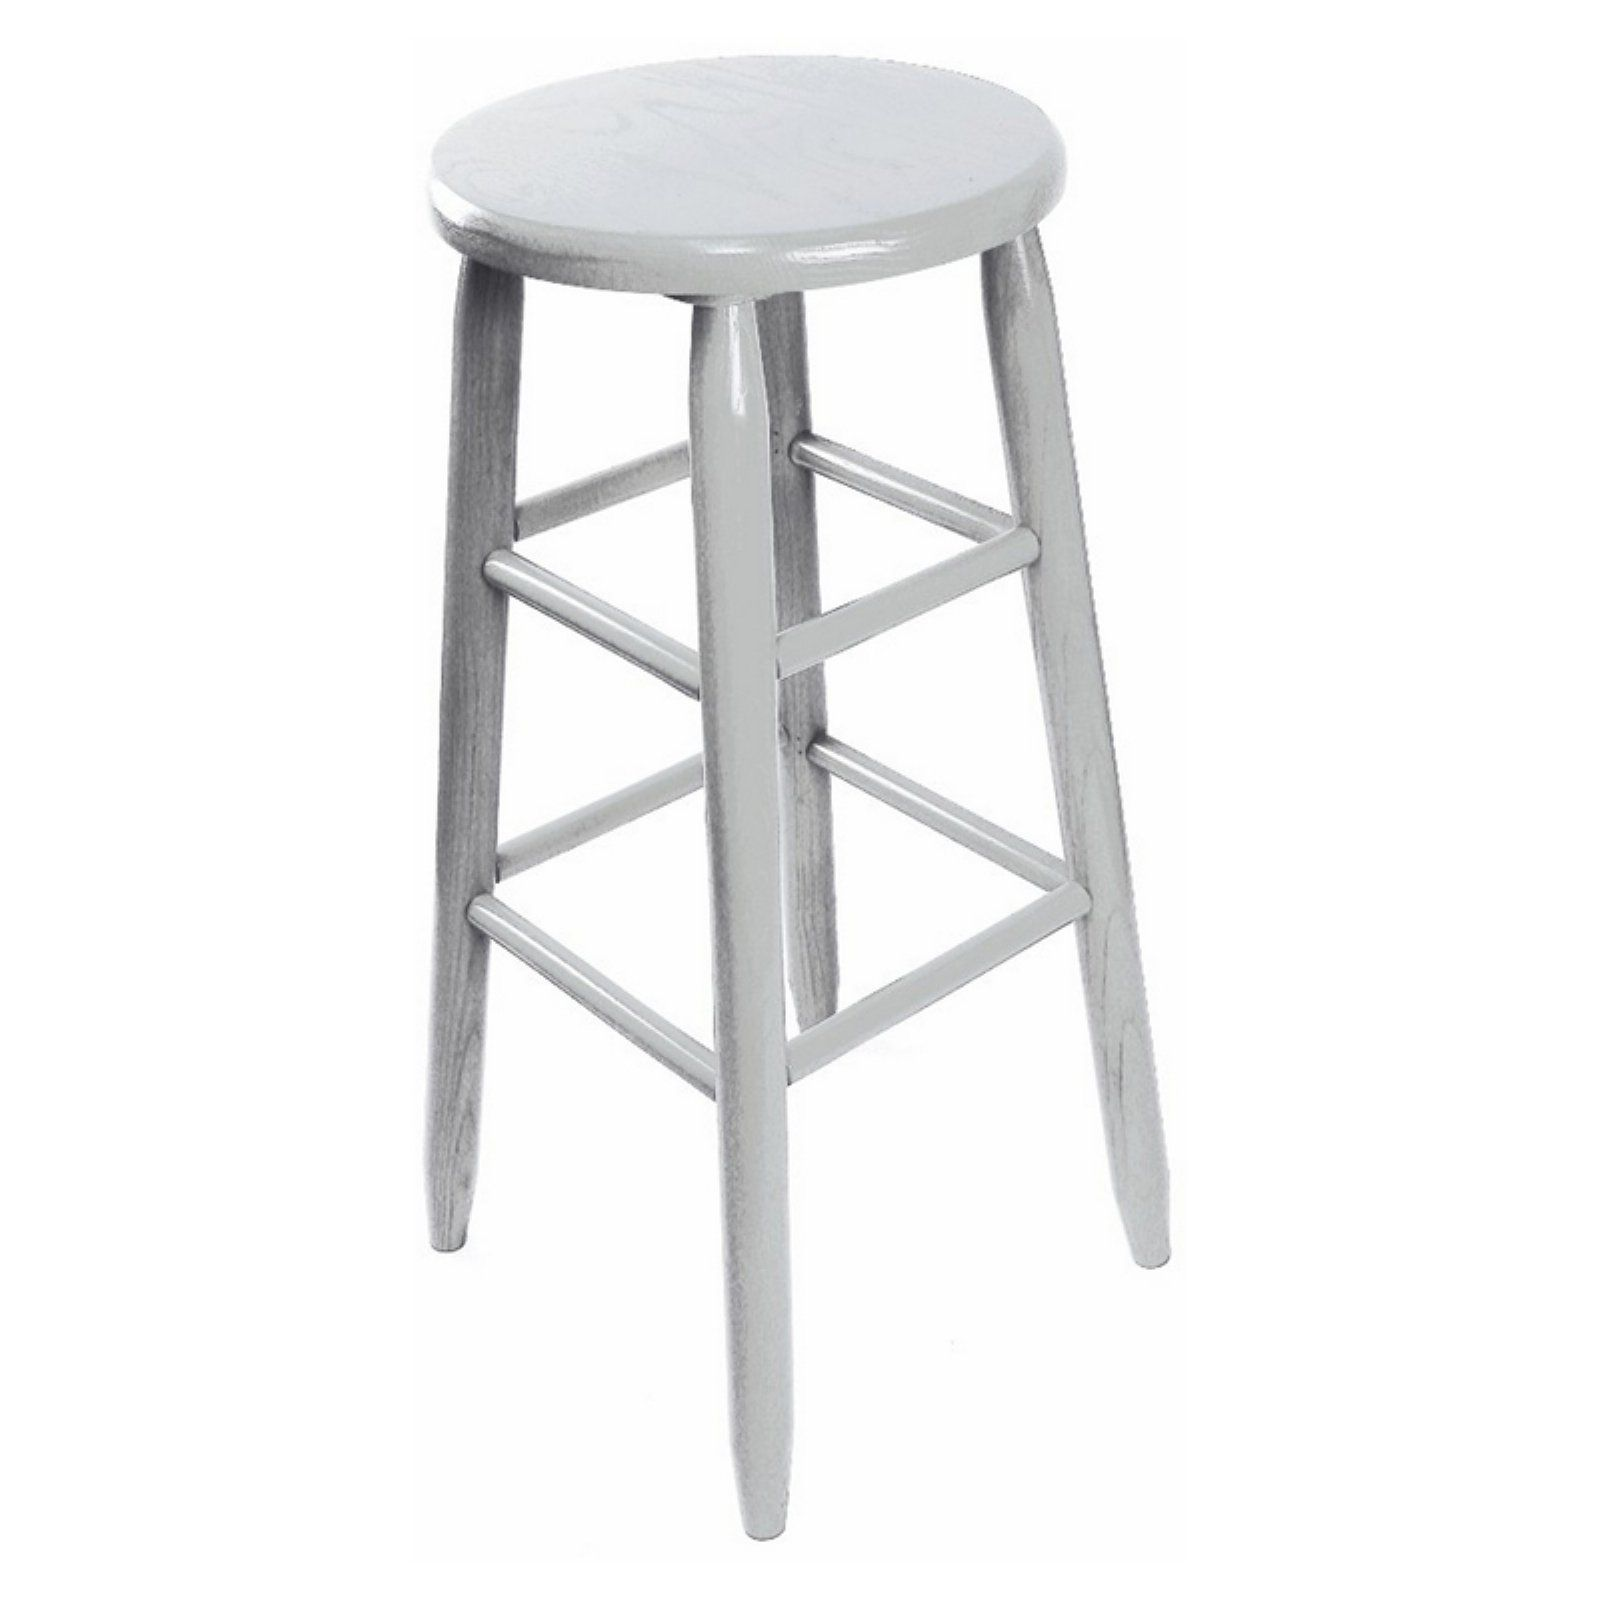 Dixie Seating Garland 30 In Round Top Backless Barstool Backless Bar Stools Bar Stools Home Decor